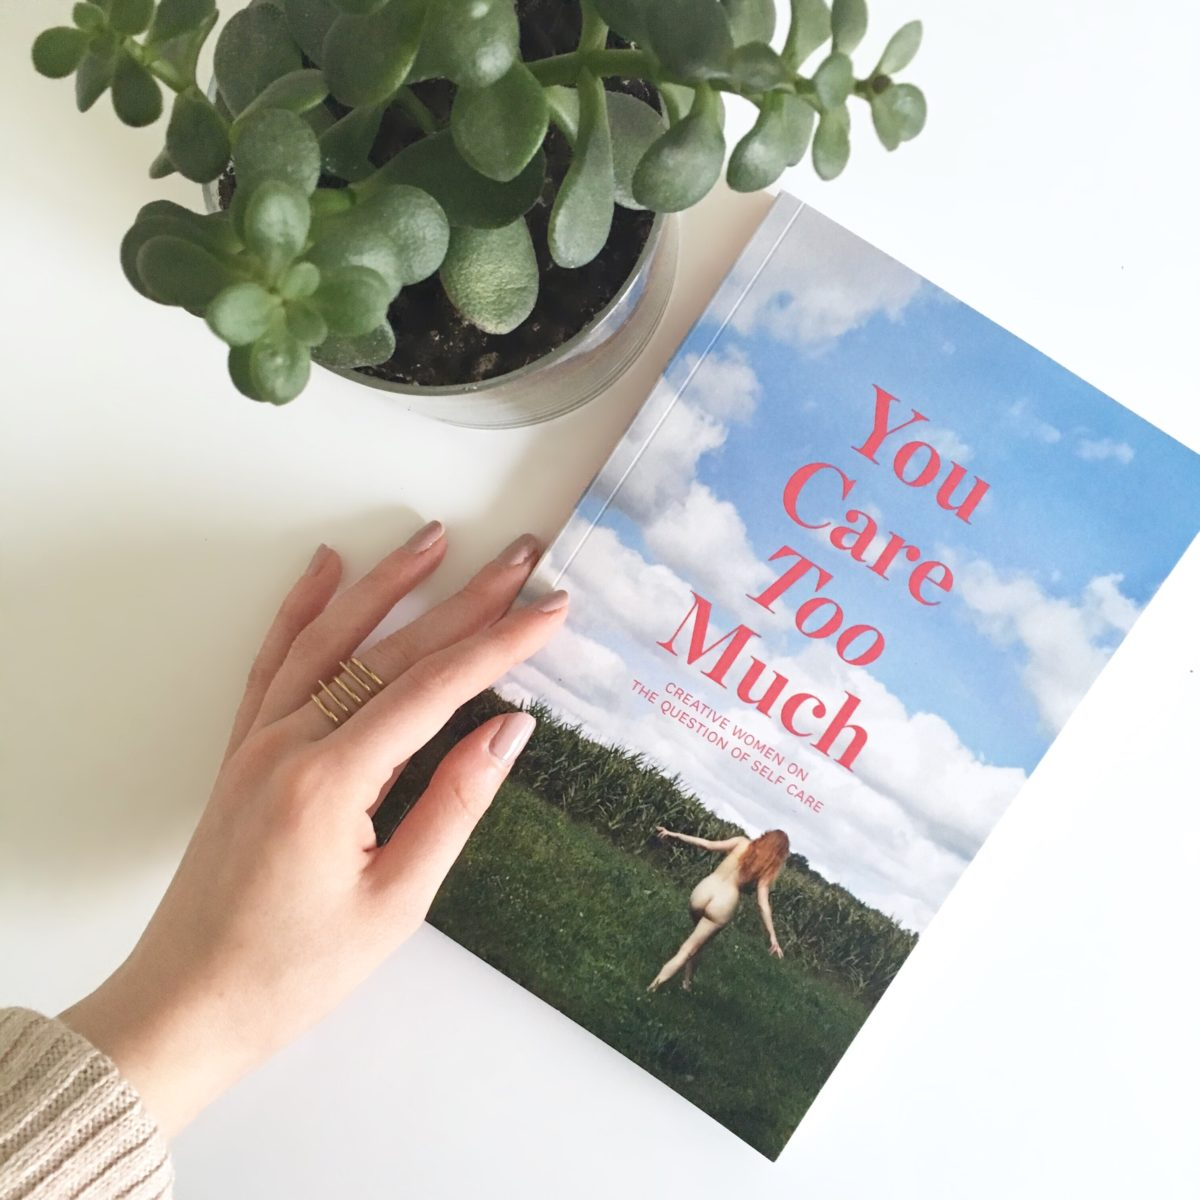 You Care Too Much: Creative Women on the Question of Self-Care